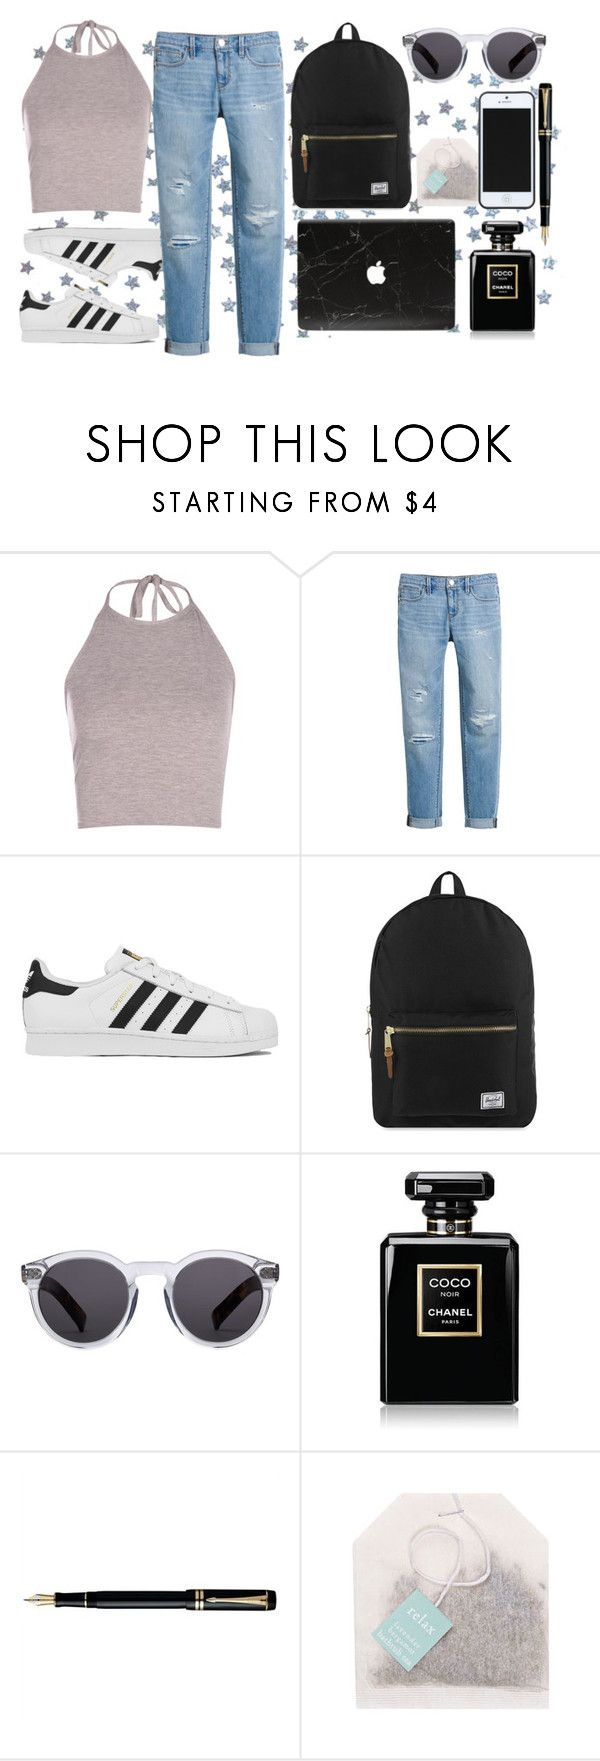 """""""UNTITLED"""" by go1df1sh ❤ liked on Polyvore featuring Boohoo, White House Black Market, adidas, Herschel Supply Co., Illesteva, Chanel, Fountain and Kate Spade Saturday"""